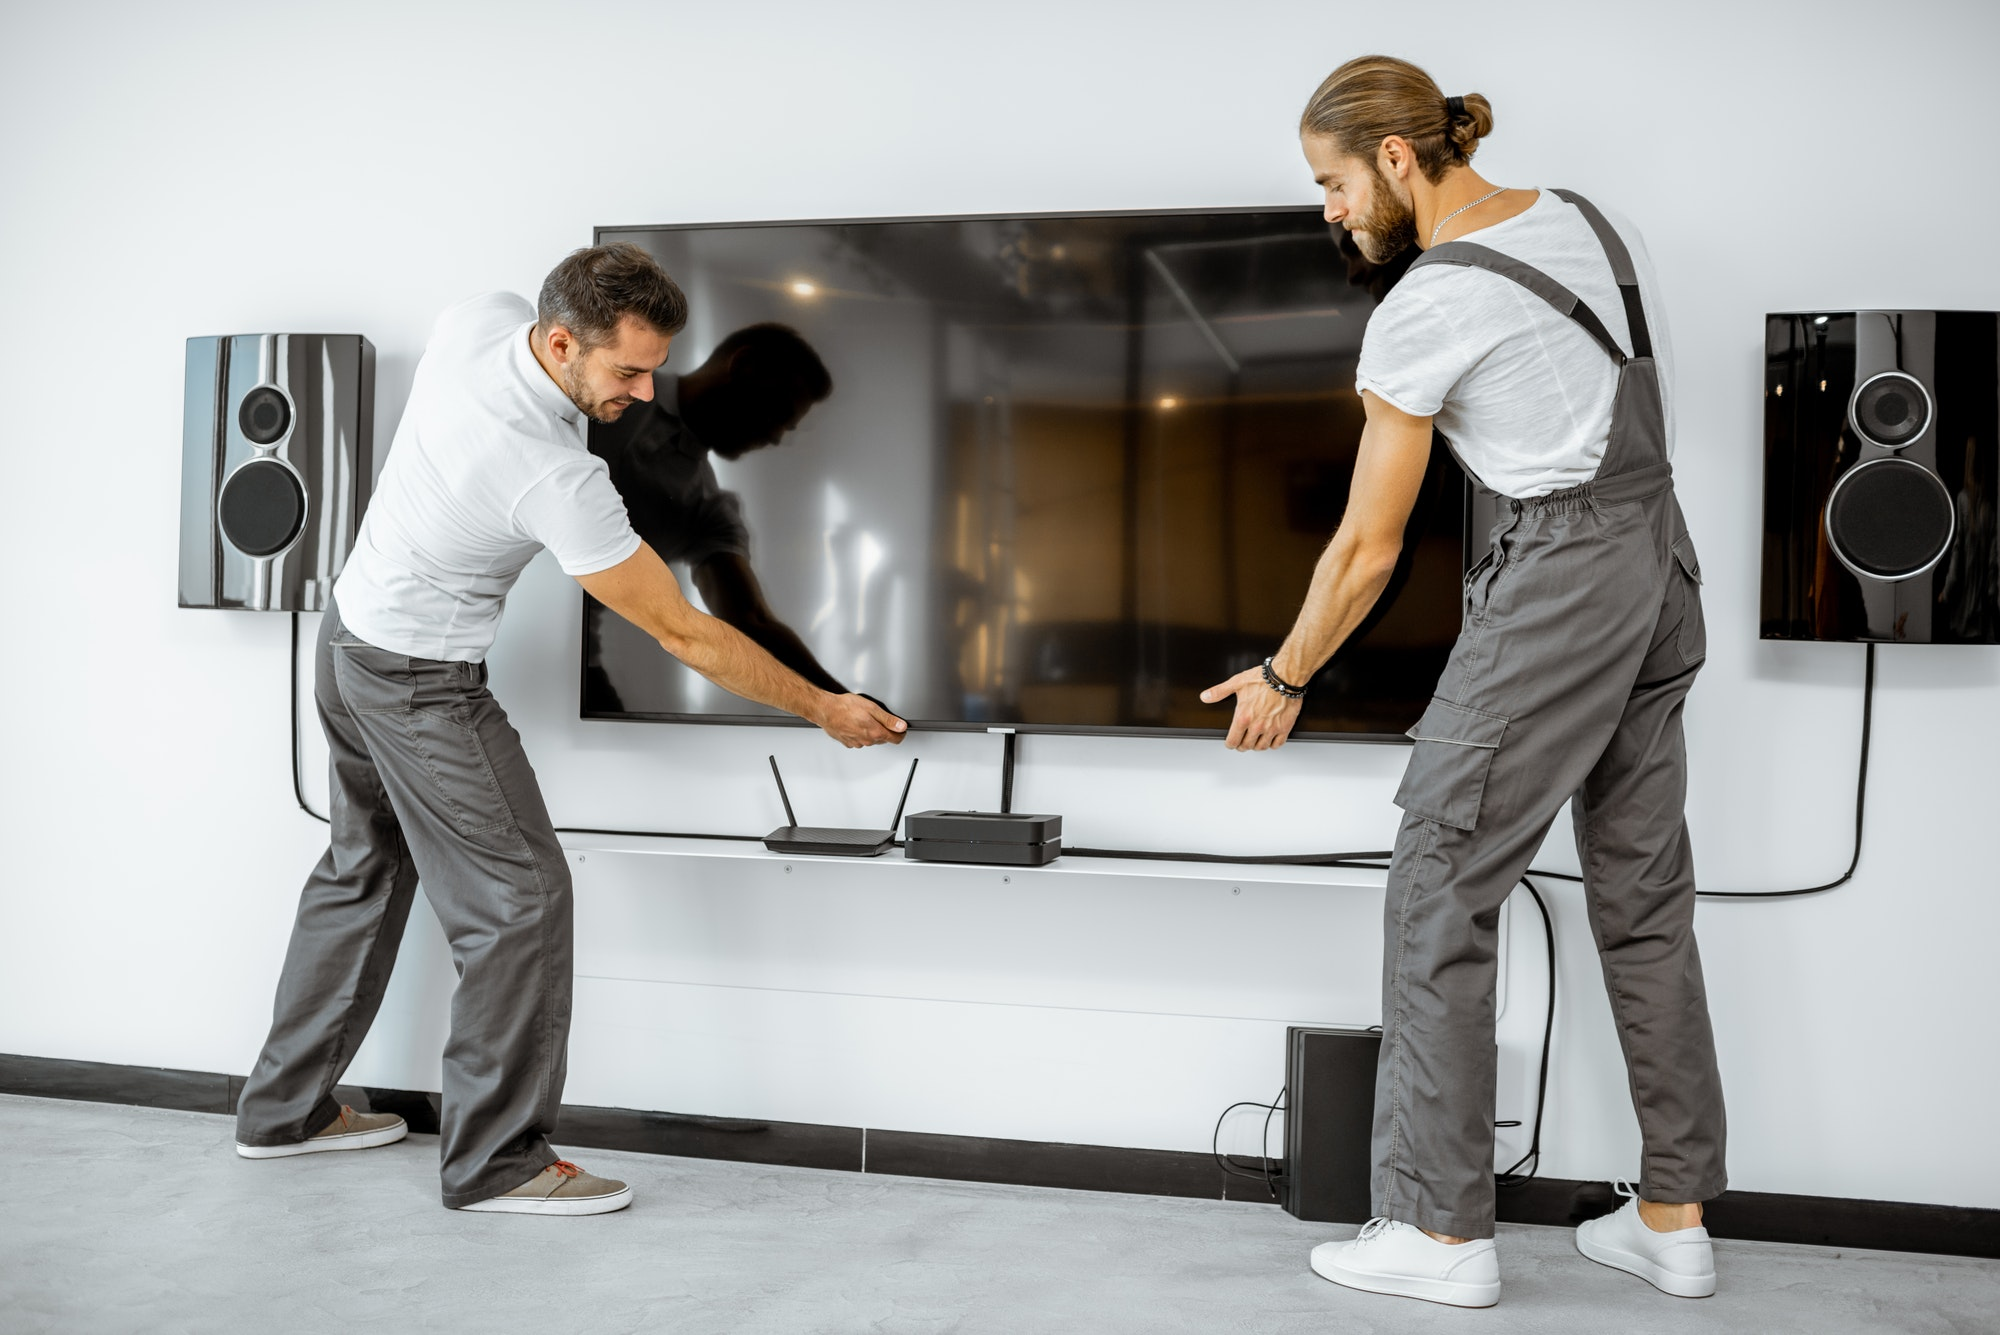 Workmen installing television at home